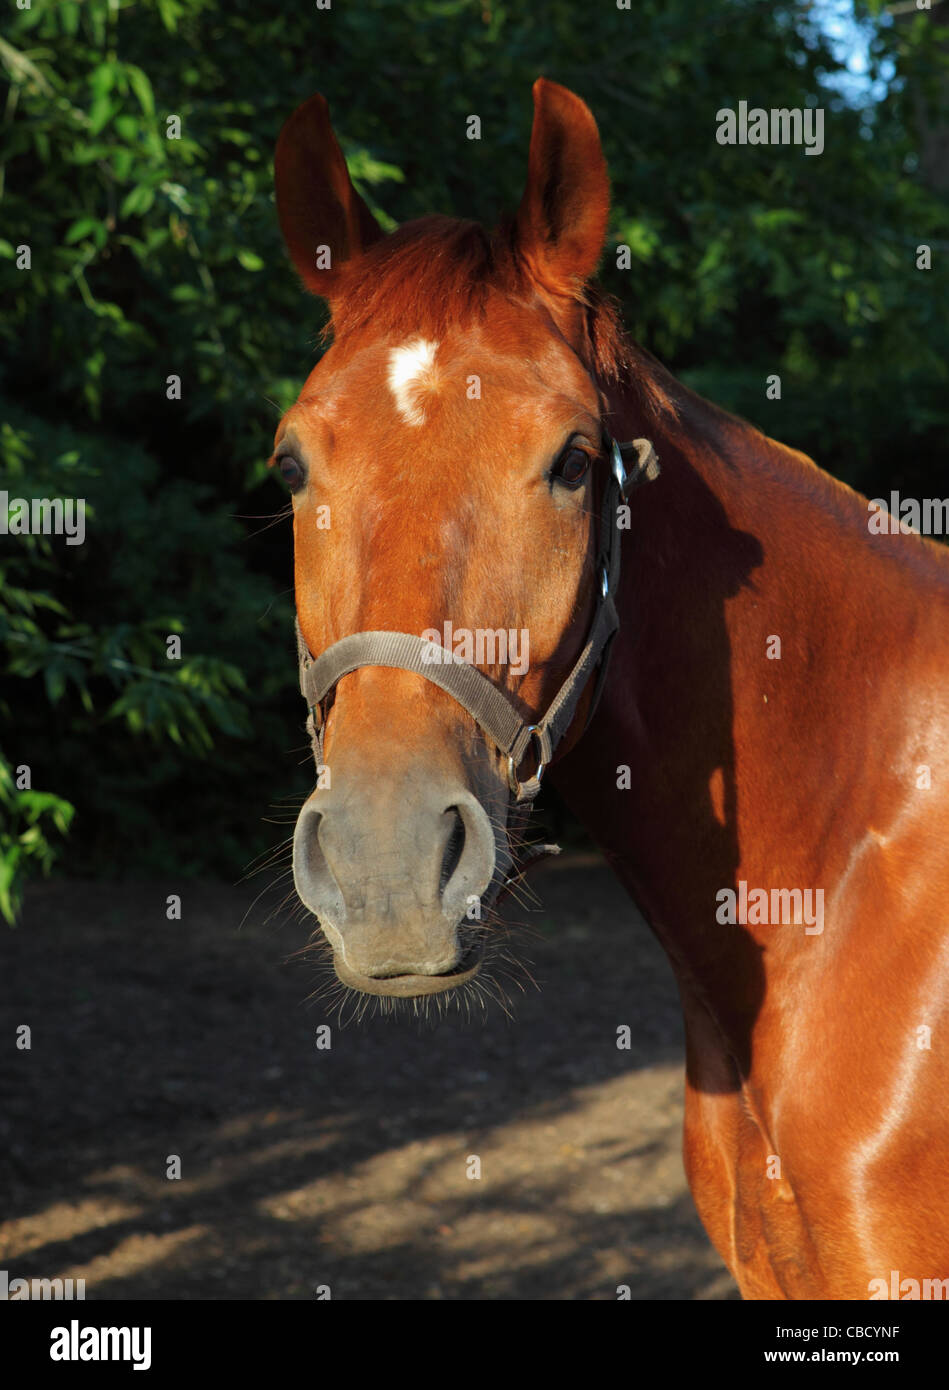 bay horse looking at camera - focus in head - Stock Image